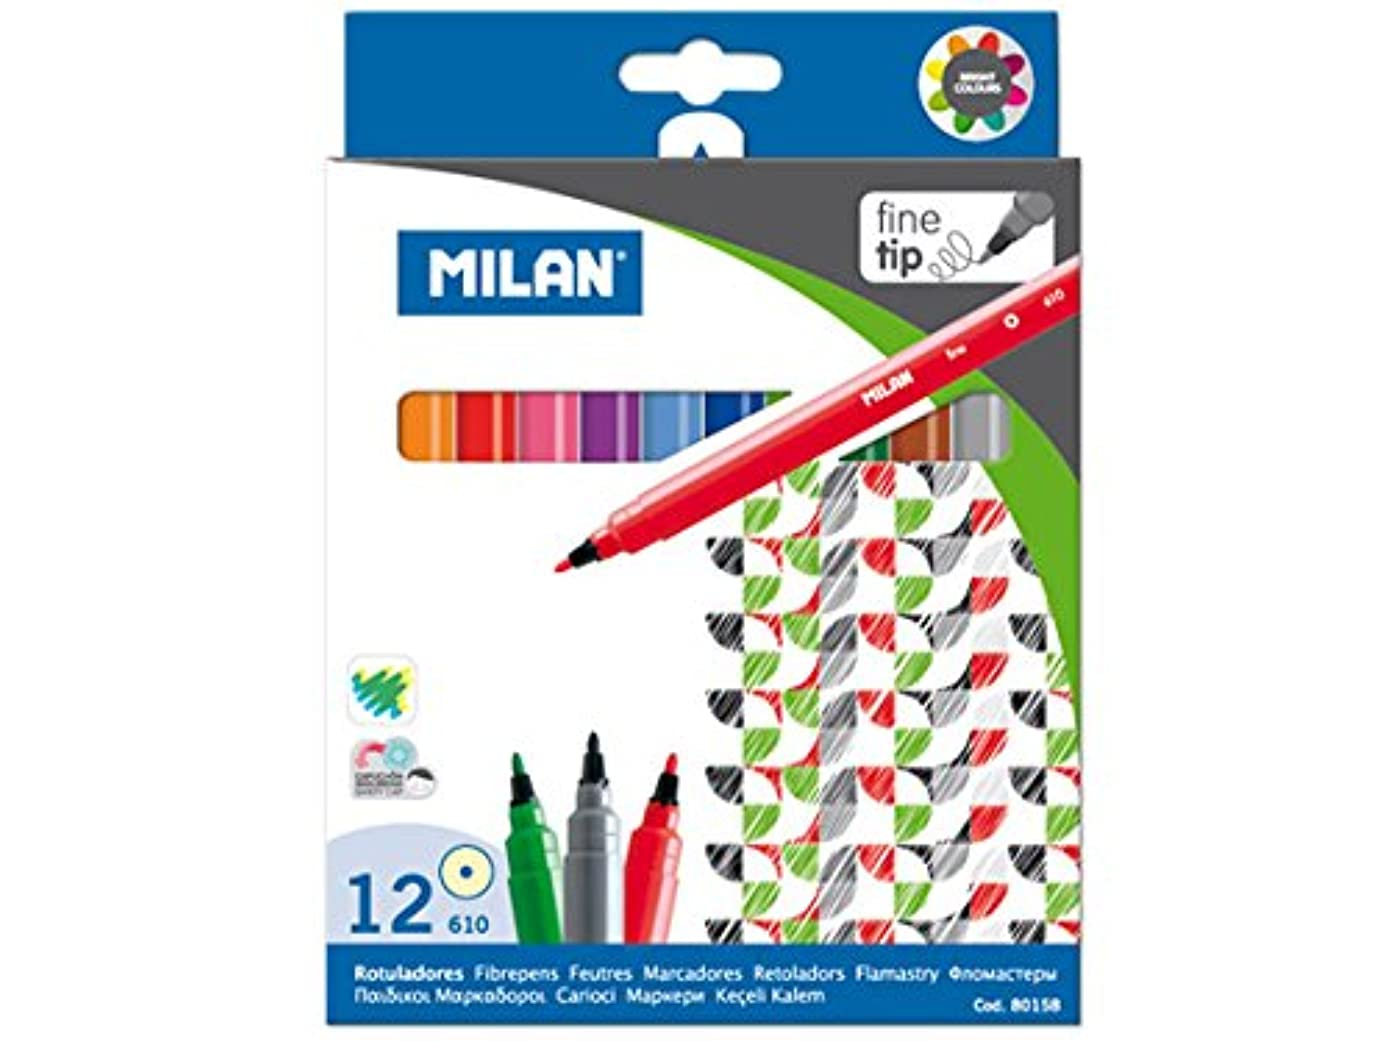 MILAN 80158 MILAN FINE TIPPED WATER-BASED MARKERS 12 COUNT SET